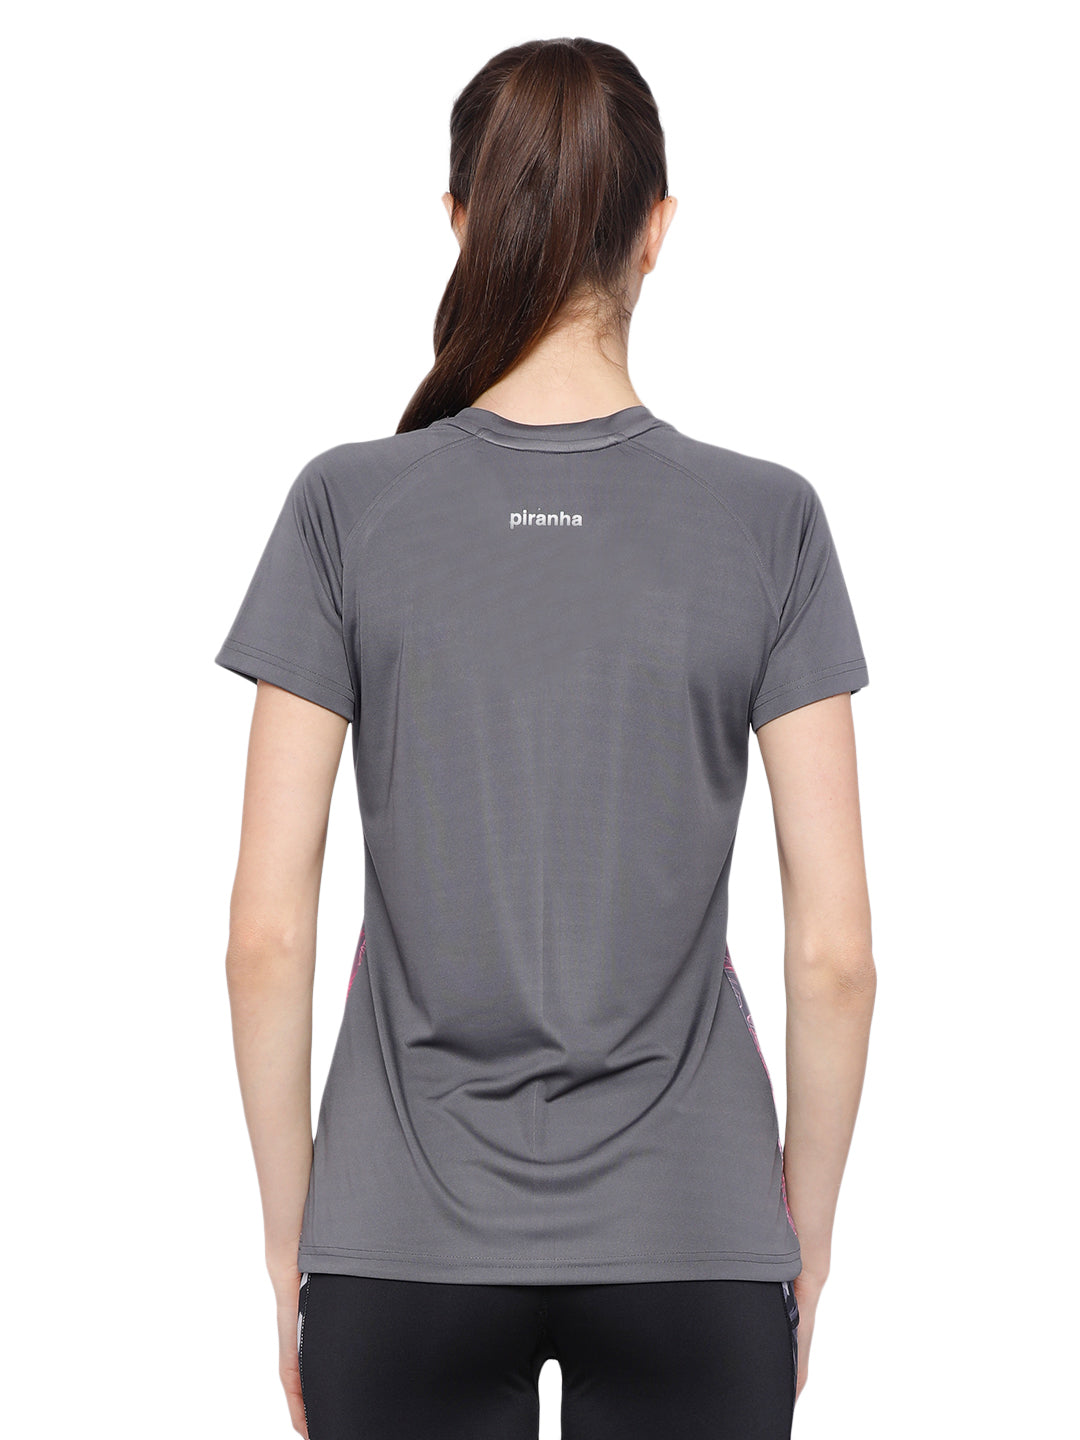 Piranha Women's Grey T-shirt TSG188